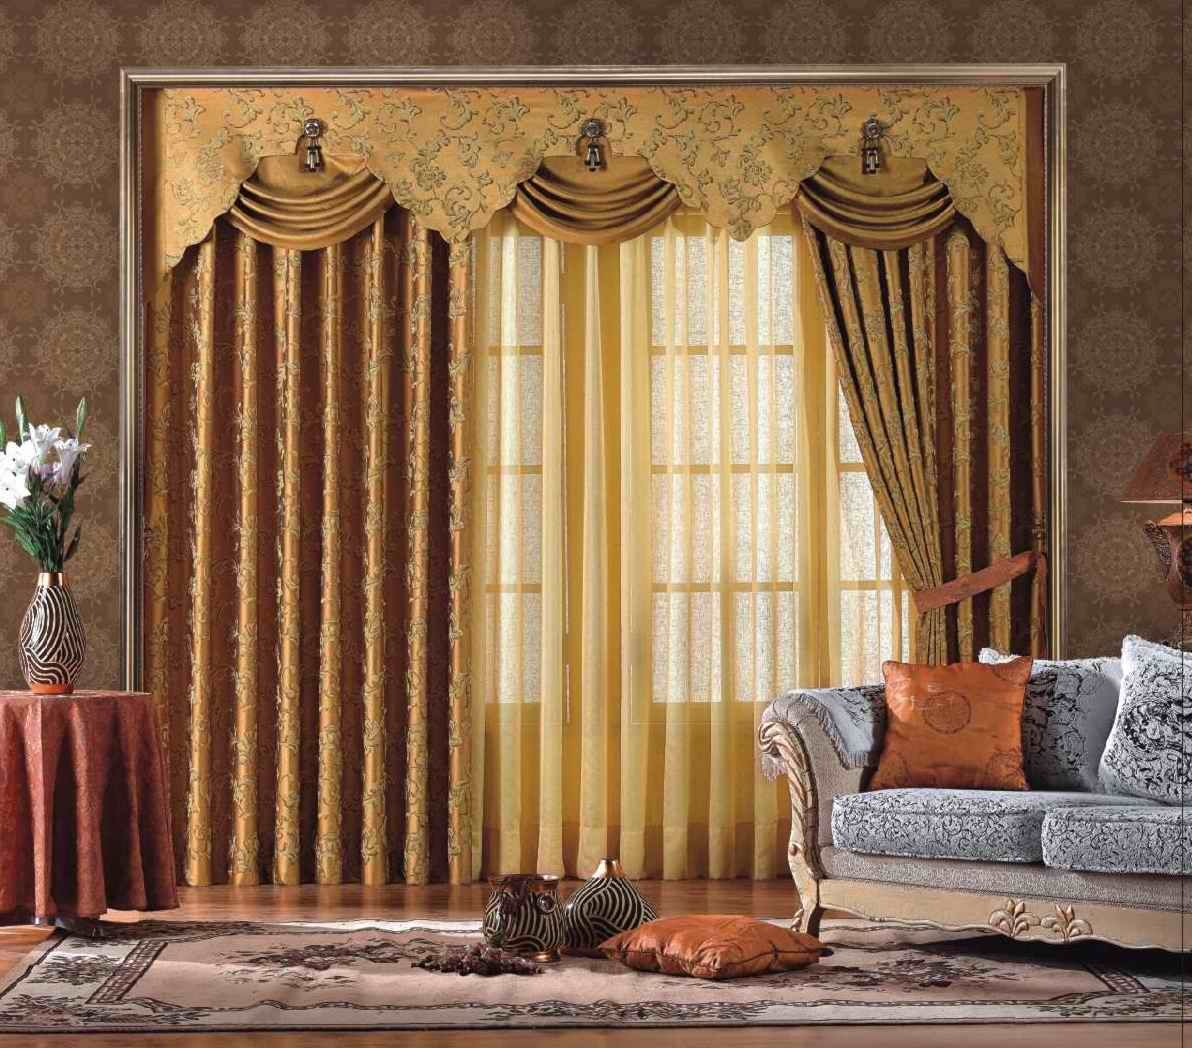 Living Room Curtain Design Simple Architecture  Living Room Curtains With Valance Sutntljr Gorgeous Inspiration Design